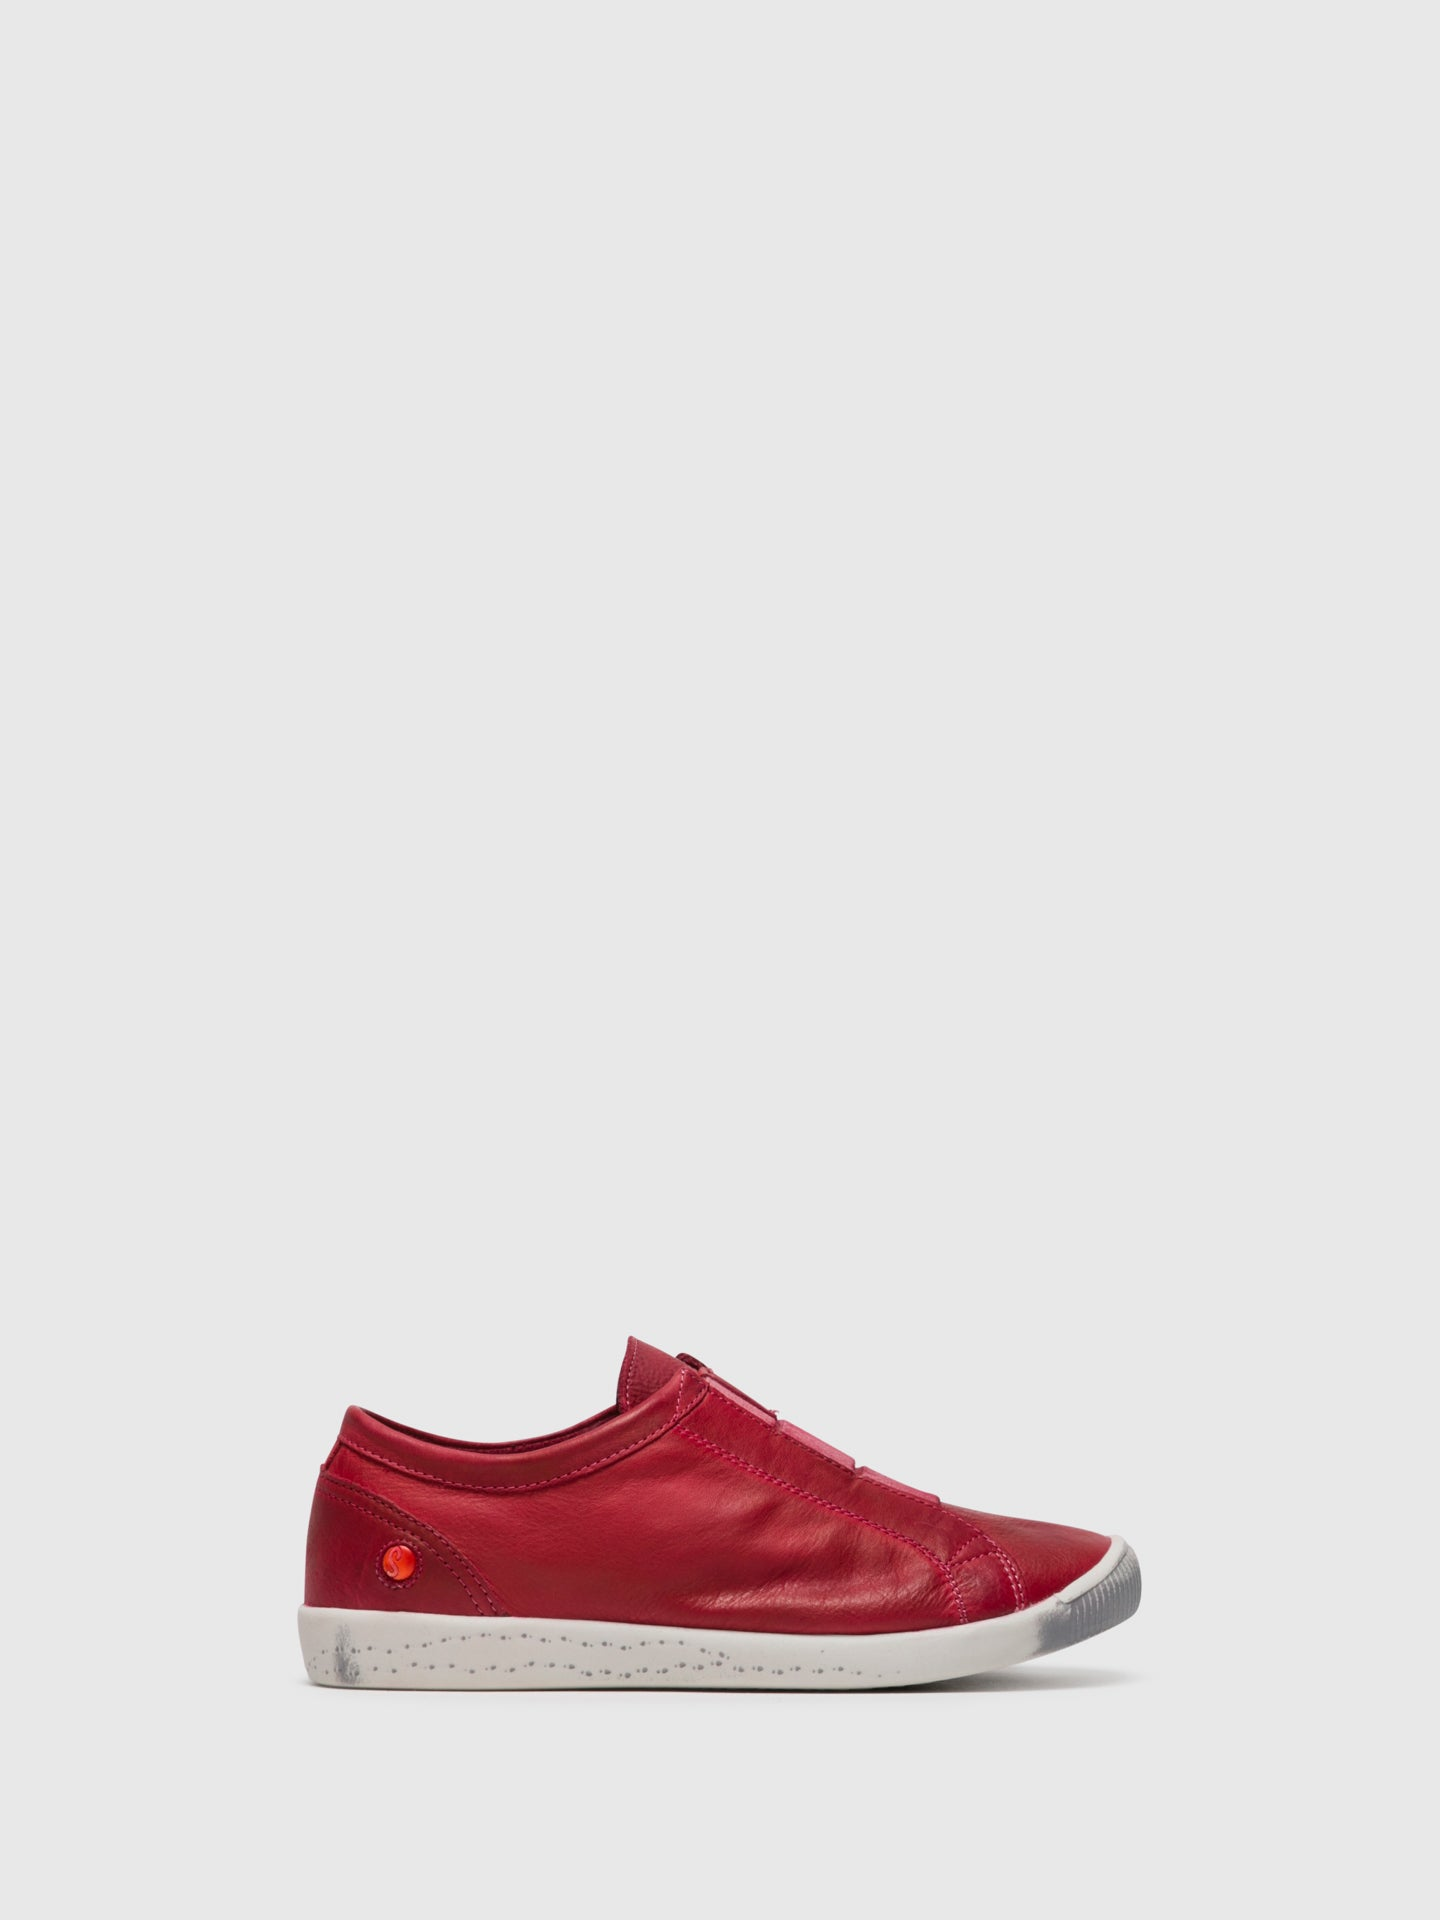 Softinos Red Slip-on Sneakers